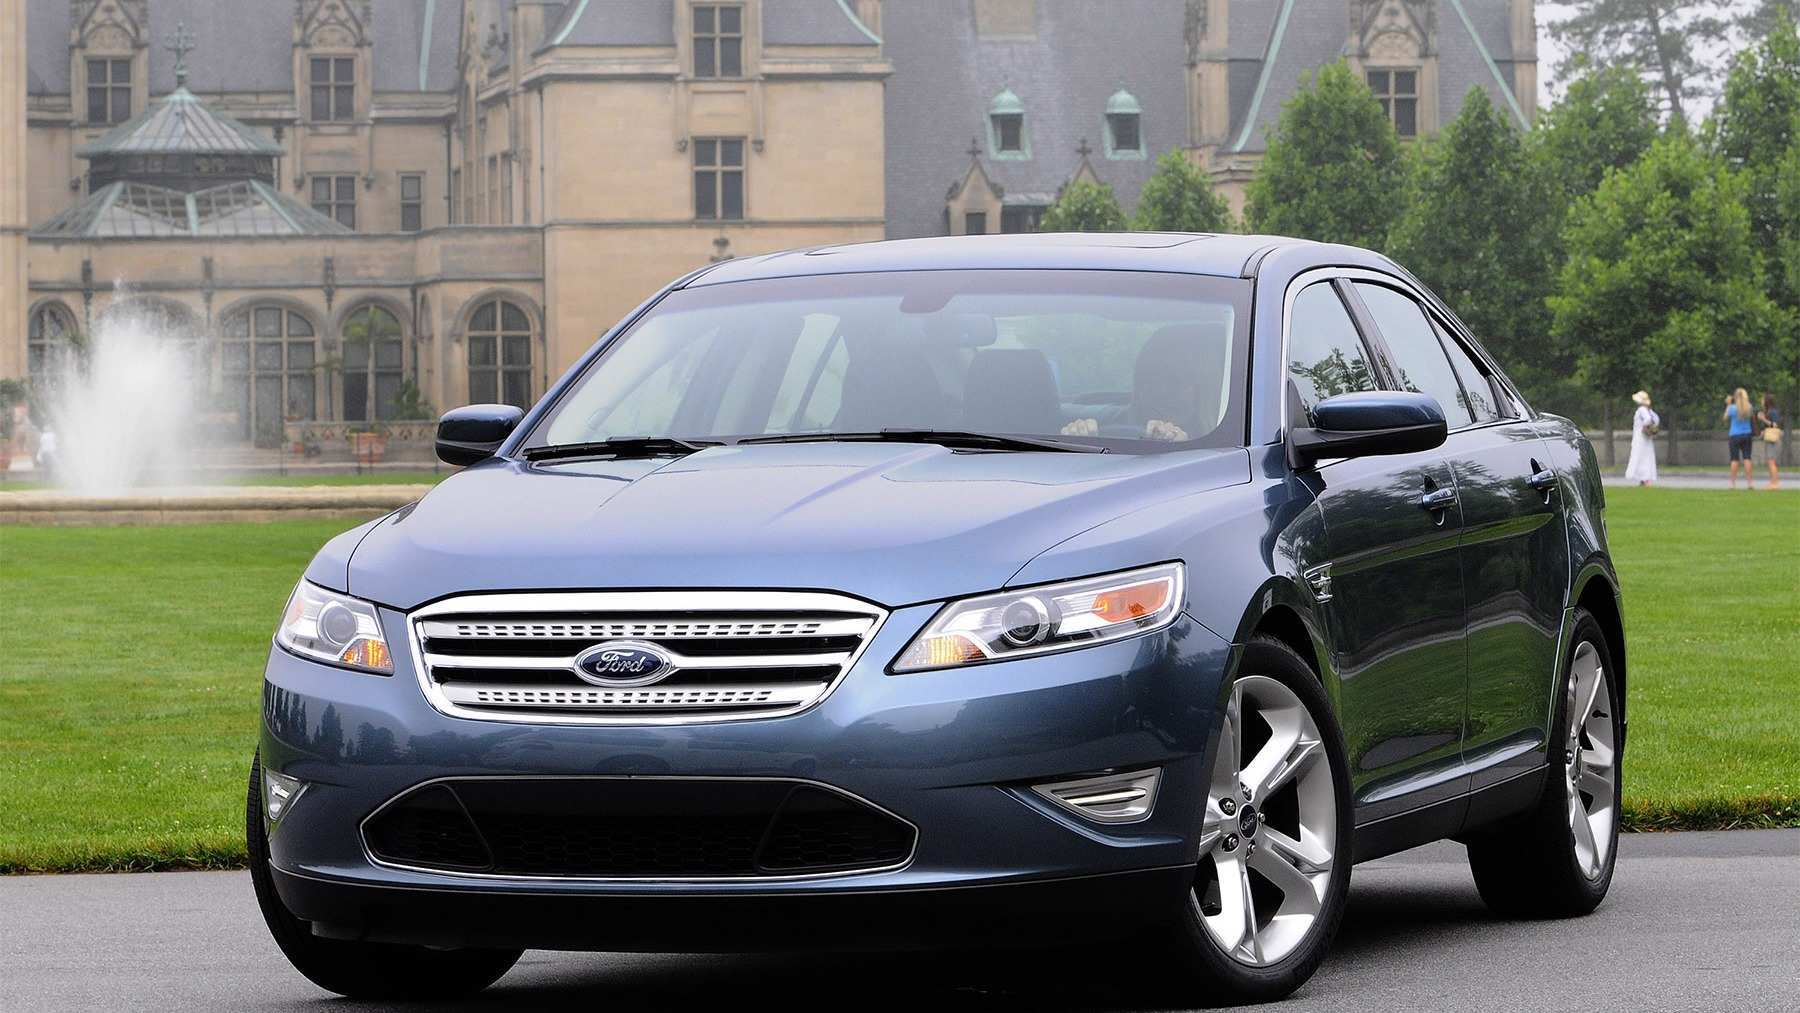 59 A 2020 Ford Taurus Sho Pricing